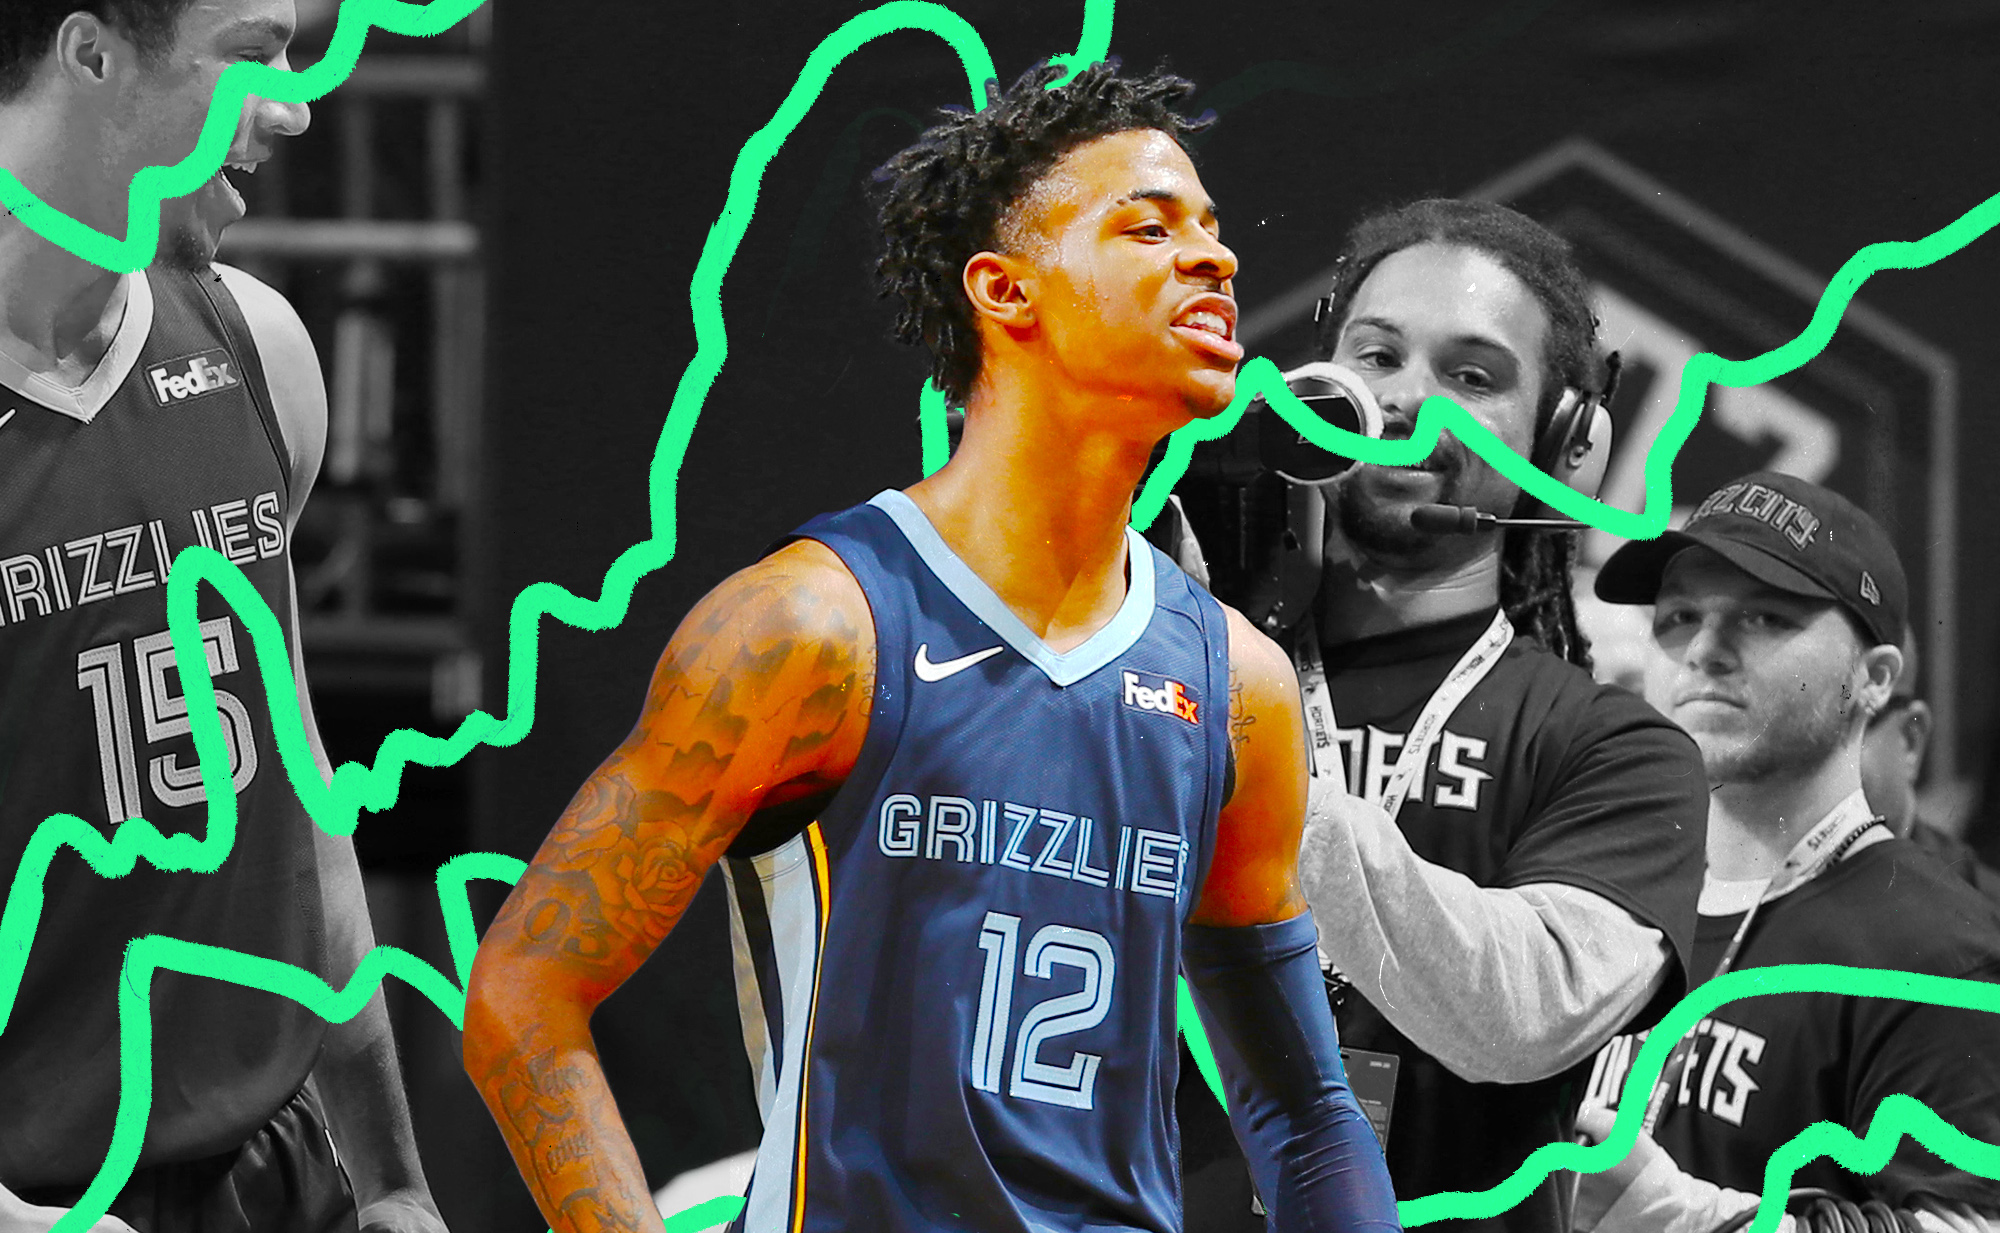 Ja Morant mean-mugging and flexing after hitting a game winning shot over the Hornets